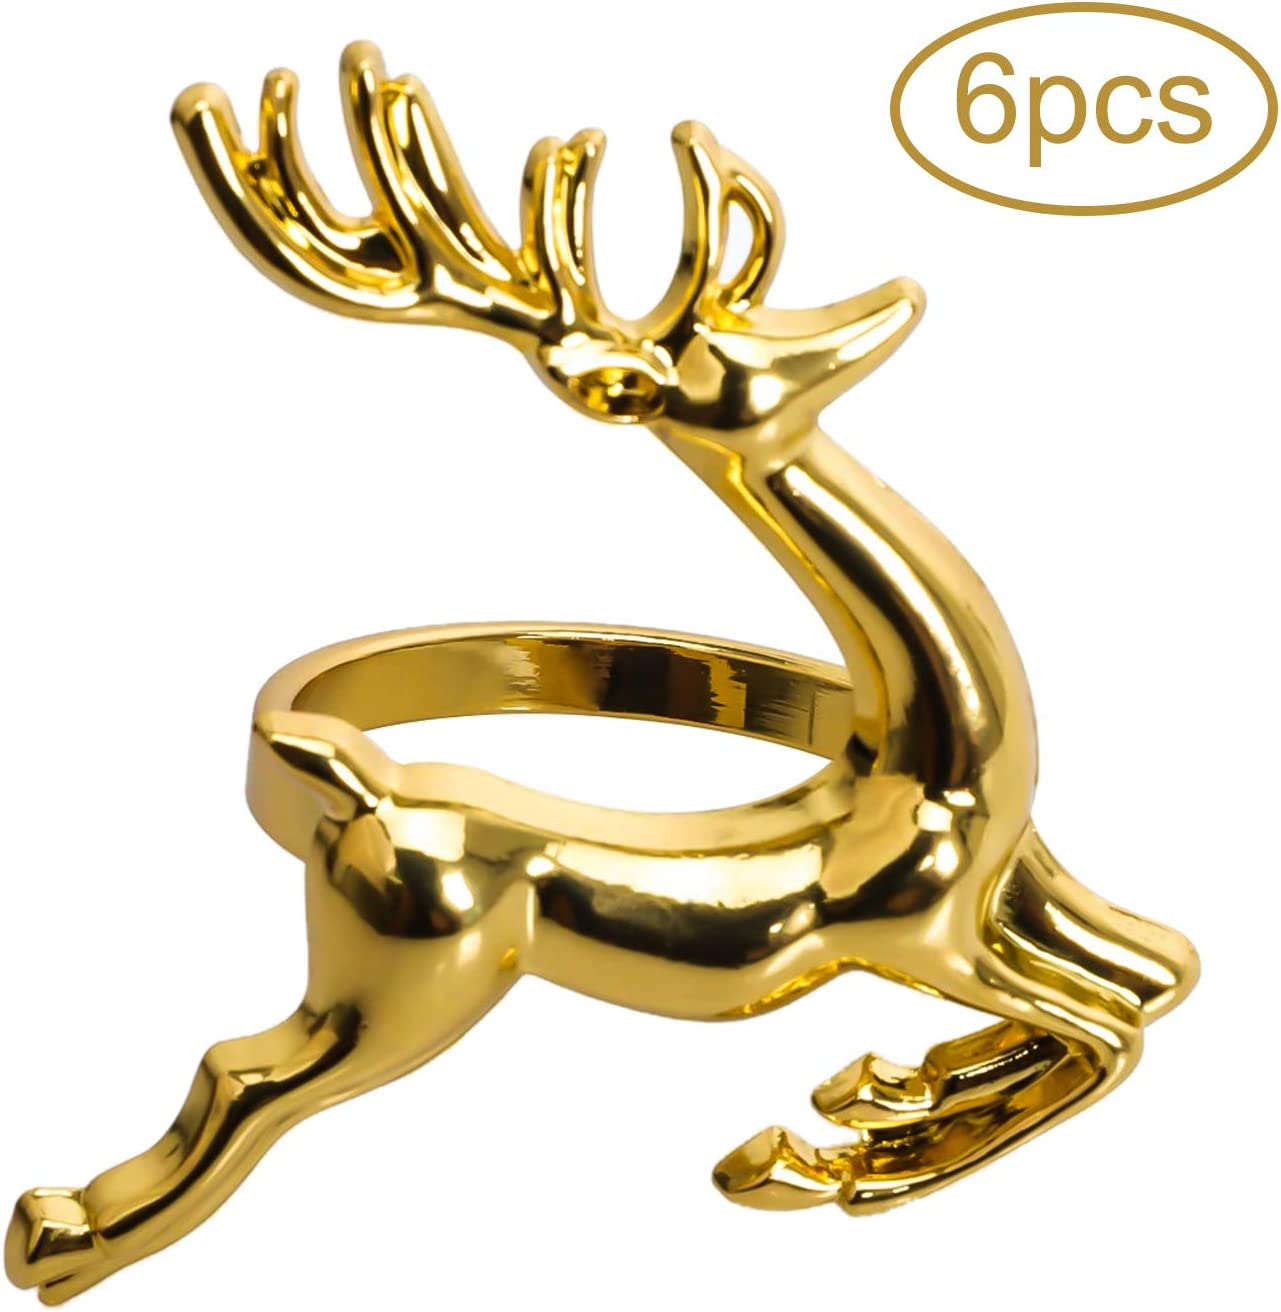 KissDate Napkin Rings, 6Pcs Gold Elk Chic Napkin Rings for Place Settings, Wedding Receptions, Christmas, Thanksgiving and Home Kitchen Dining Table Linen Accessories: Home & Kitchen